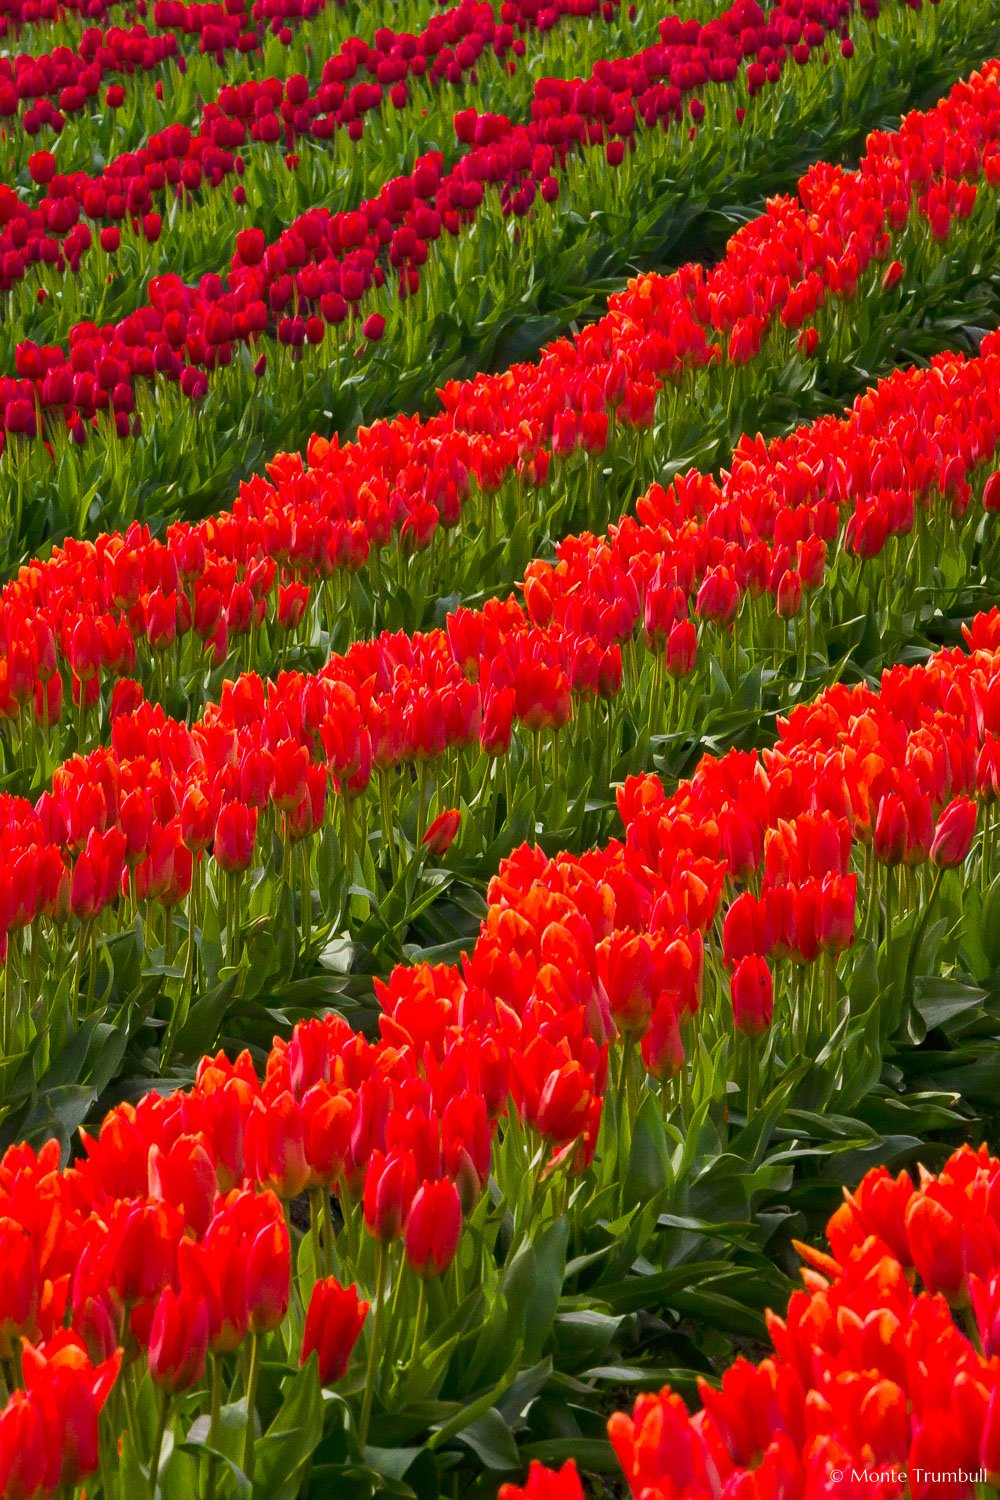 MT-20080410-163647-0001-Washington-Skagit-Valley-tulips-red-orange.jpg